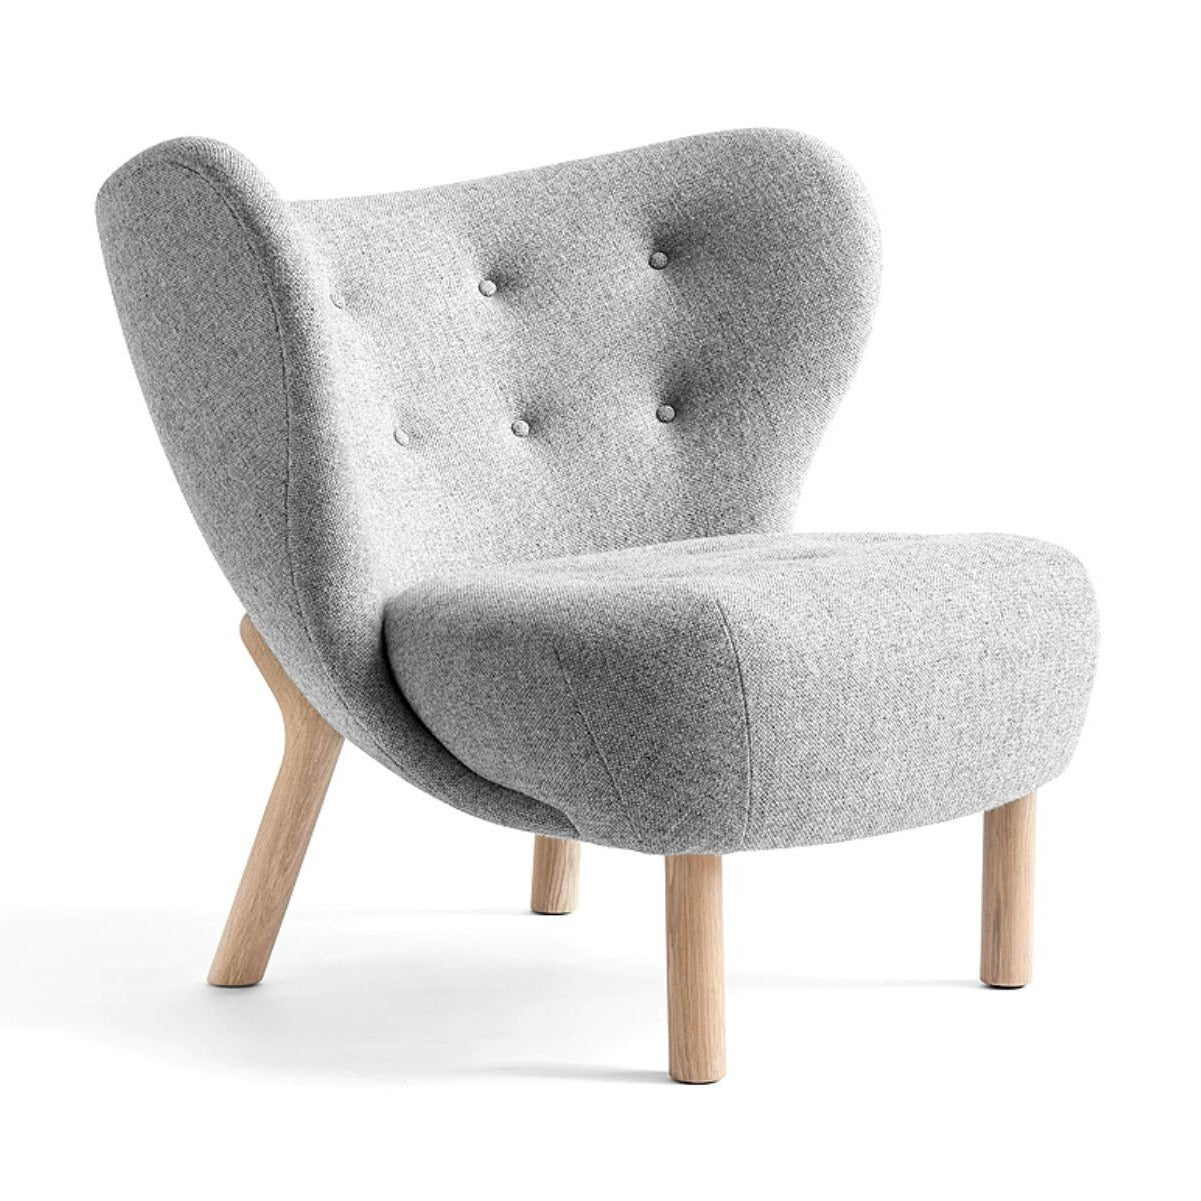 &Tradition VB1 Little Petra Lounge Chair , Hallingdal130 - White Oak